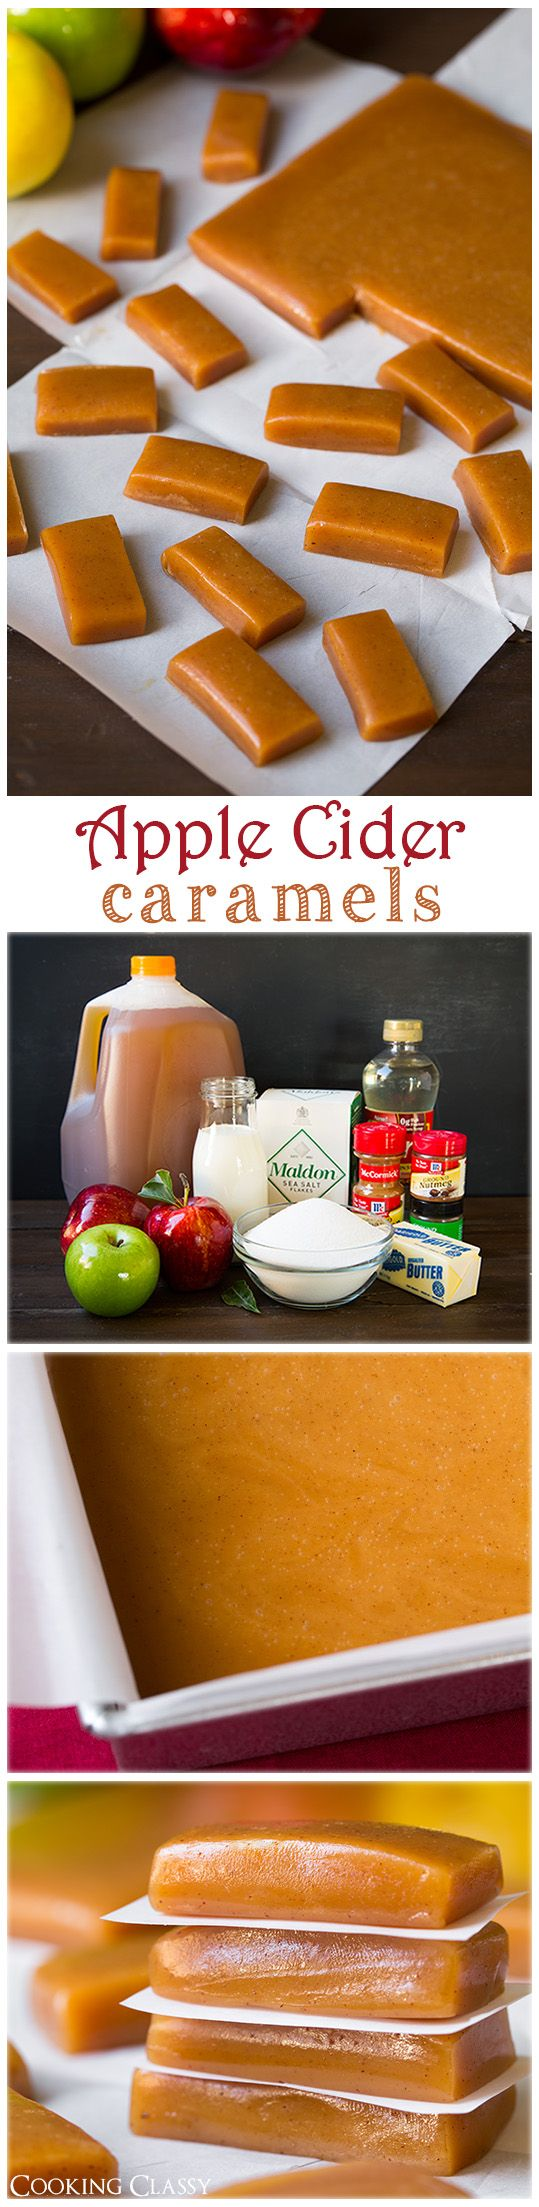 Apple Cider Caramels - they taste just like apple cider! They are the most flavorful caramels I've ever had and they are perfect for fall.